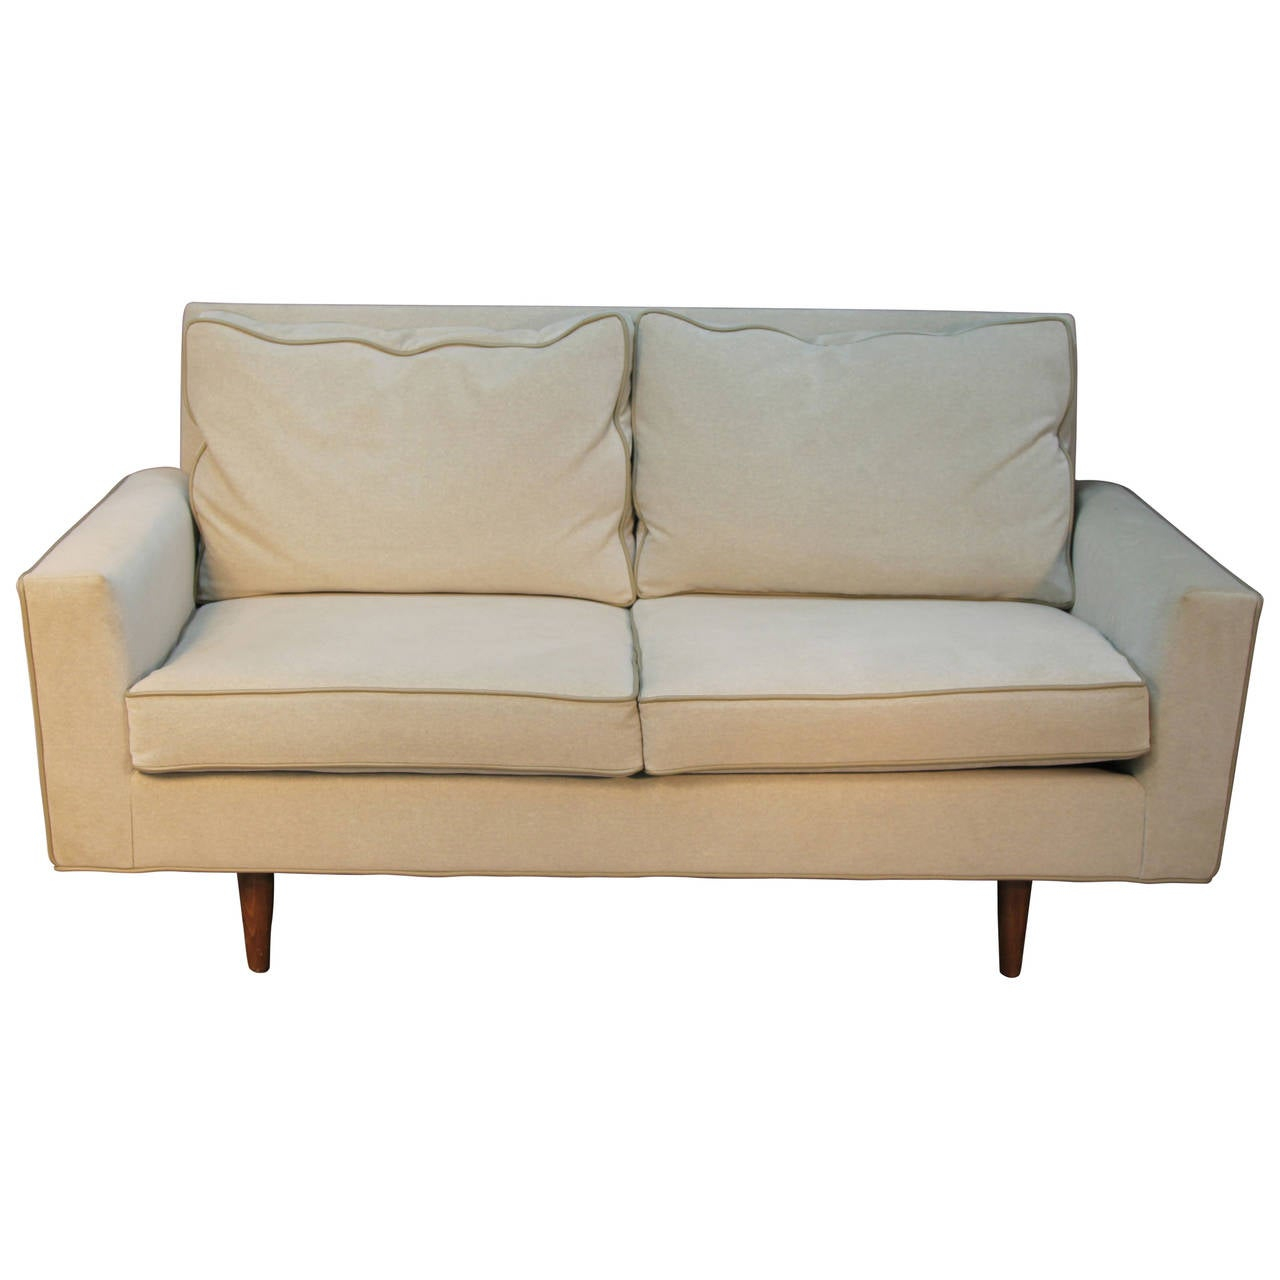 midcentury modern velvet loveseat with leather piping